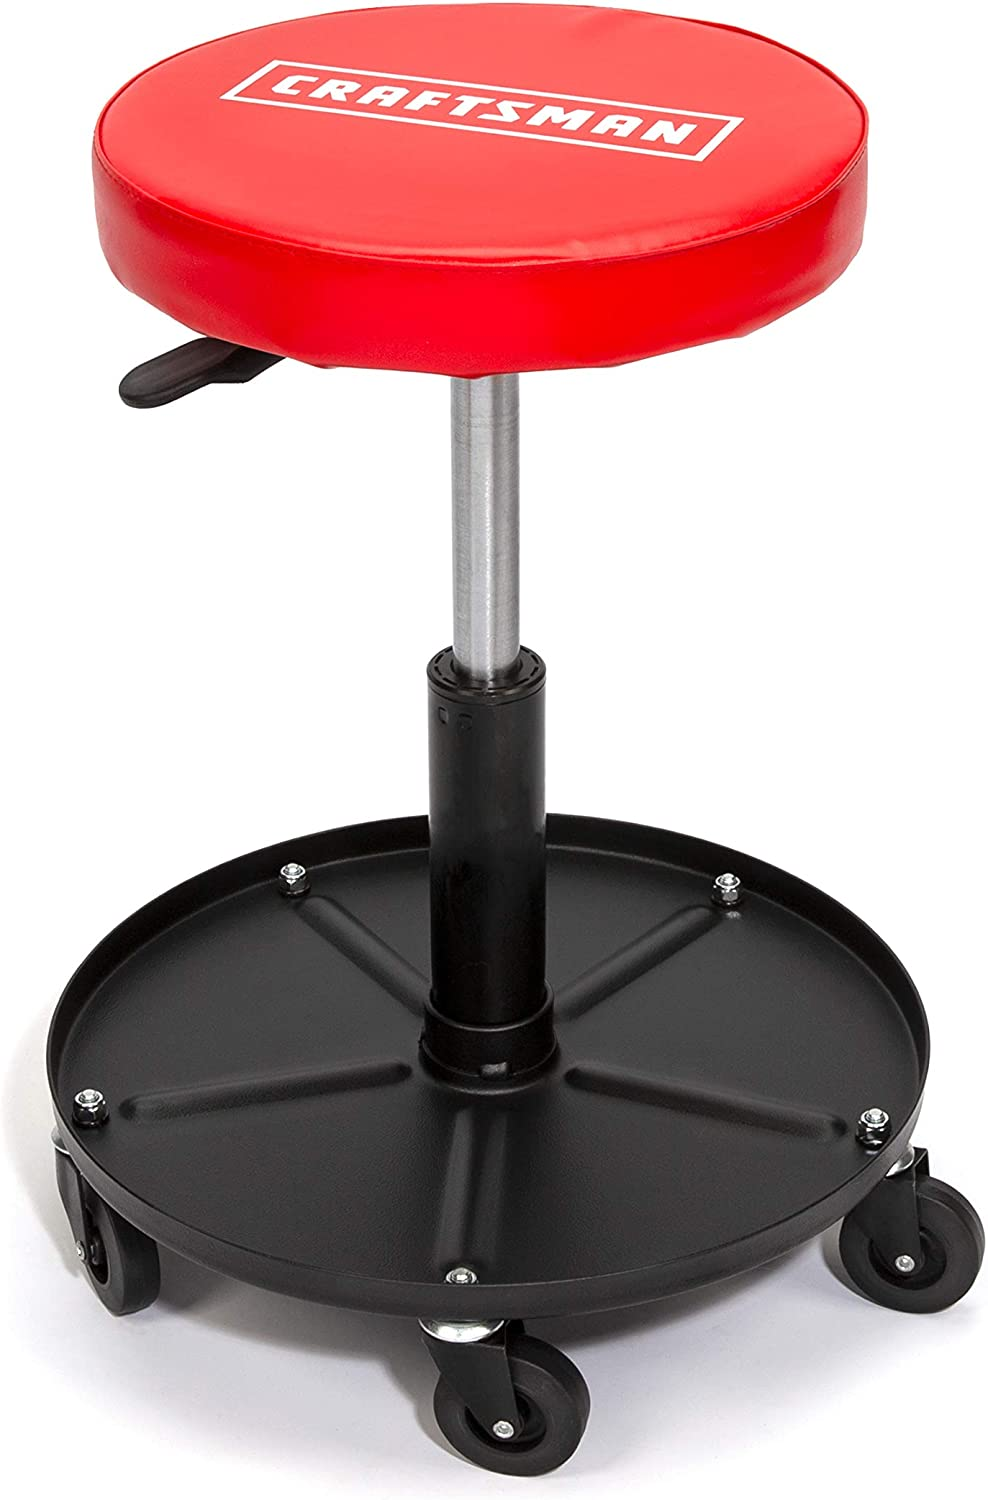 CRAFTSMAN Adjustable Height Rolling Creeper Stool with Storage Tray, Rip-Resistant Padded Vinyl Seat, 300-lb Capacity